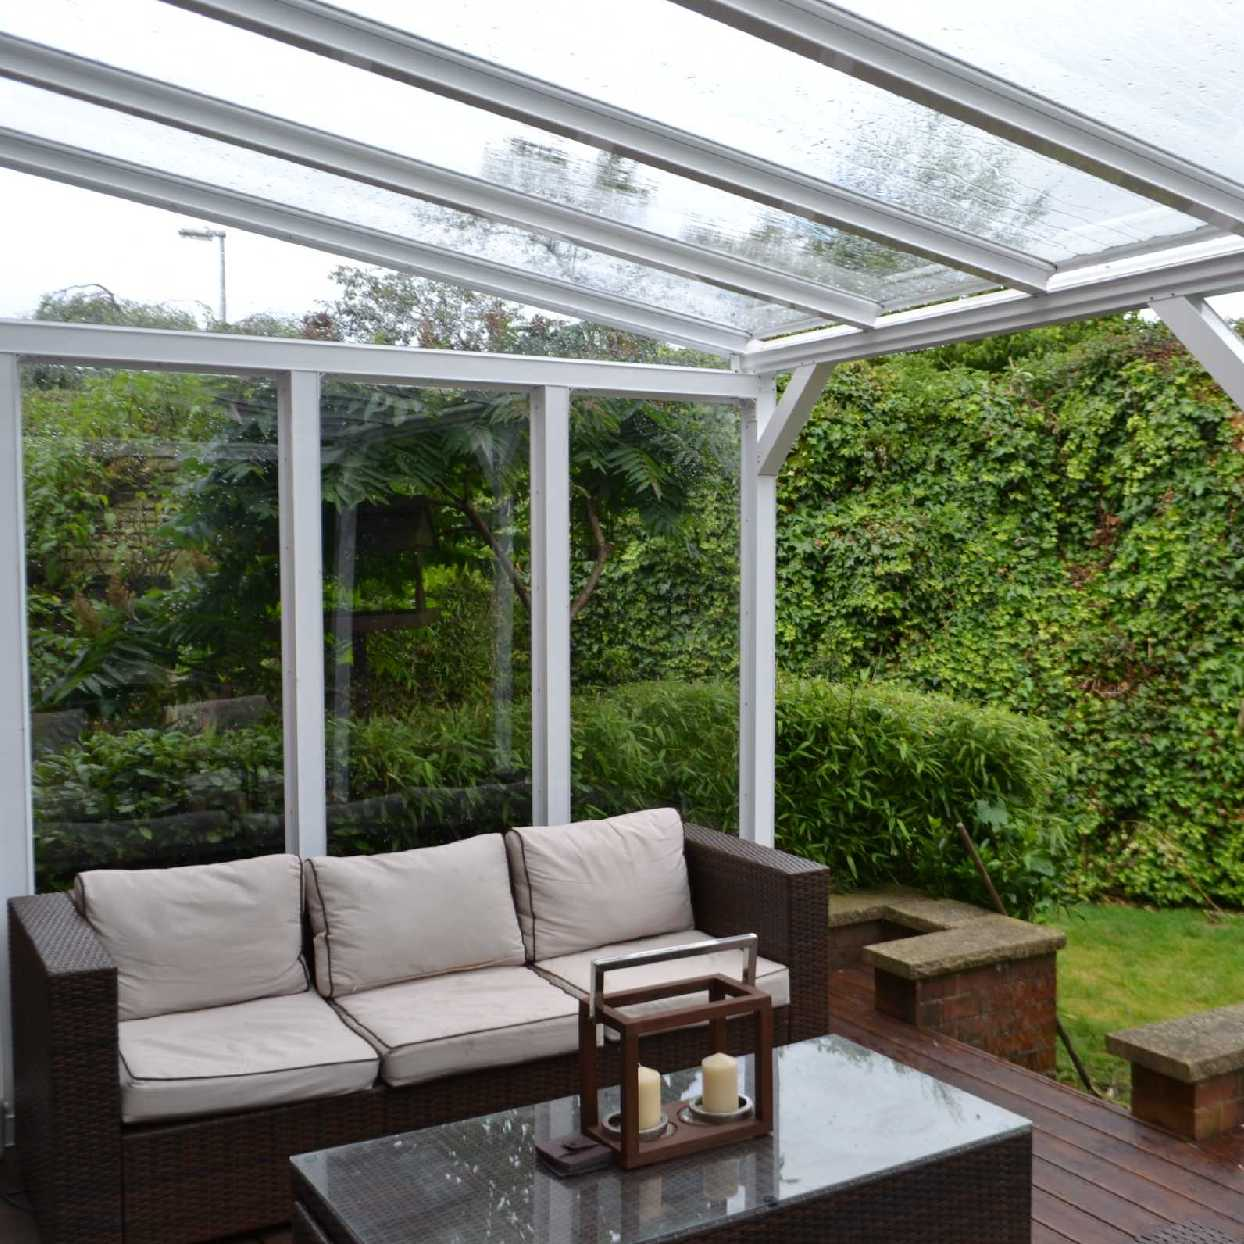 Omega Smart White Lean-To Canopy UNGLAZED for 6mm Glazing - 9.1m (W) x 2.0m (P), (5) Supporting Posts